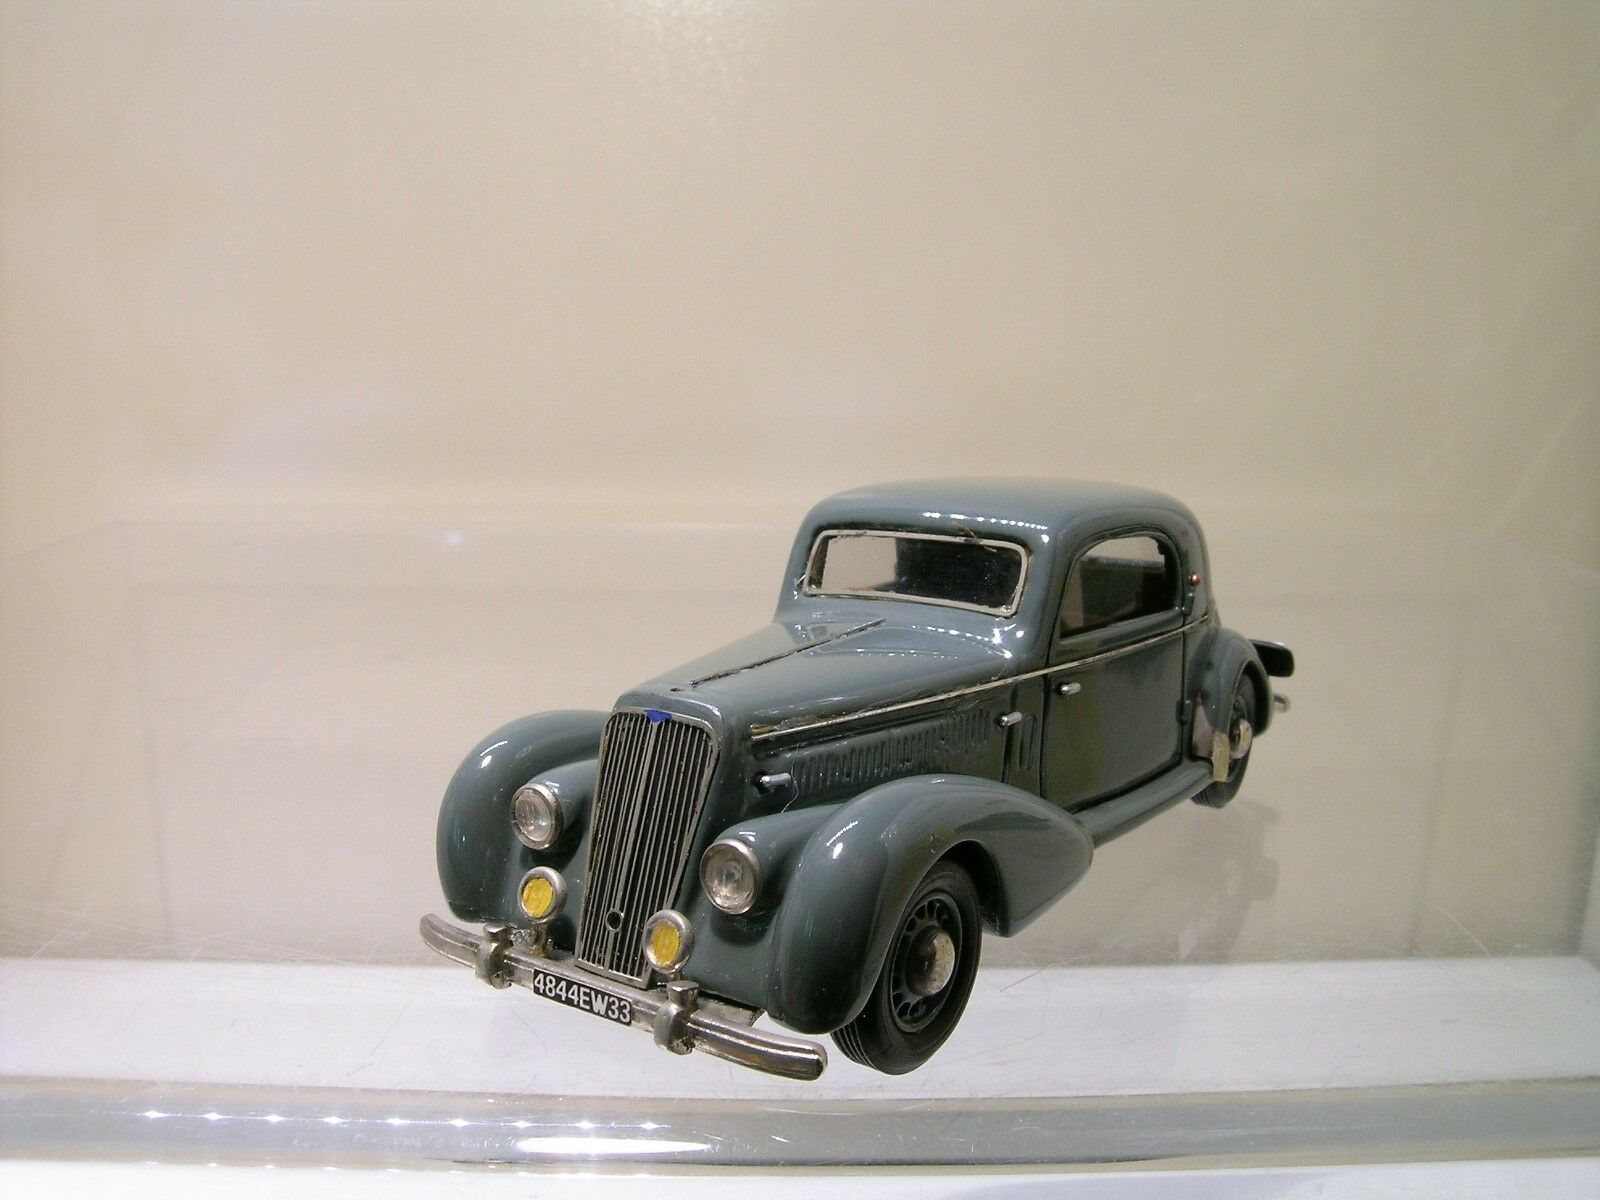 MA COLLECTION No.48 SALMSON  S4 61 COUPE 1949 gris RESIN HANDBUILT No.8 1 43  pour la vente en gros